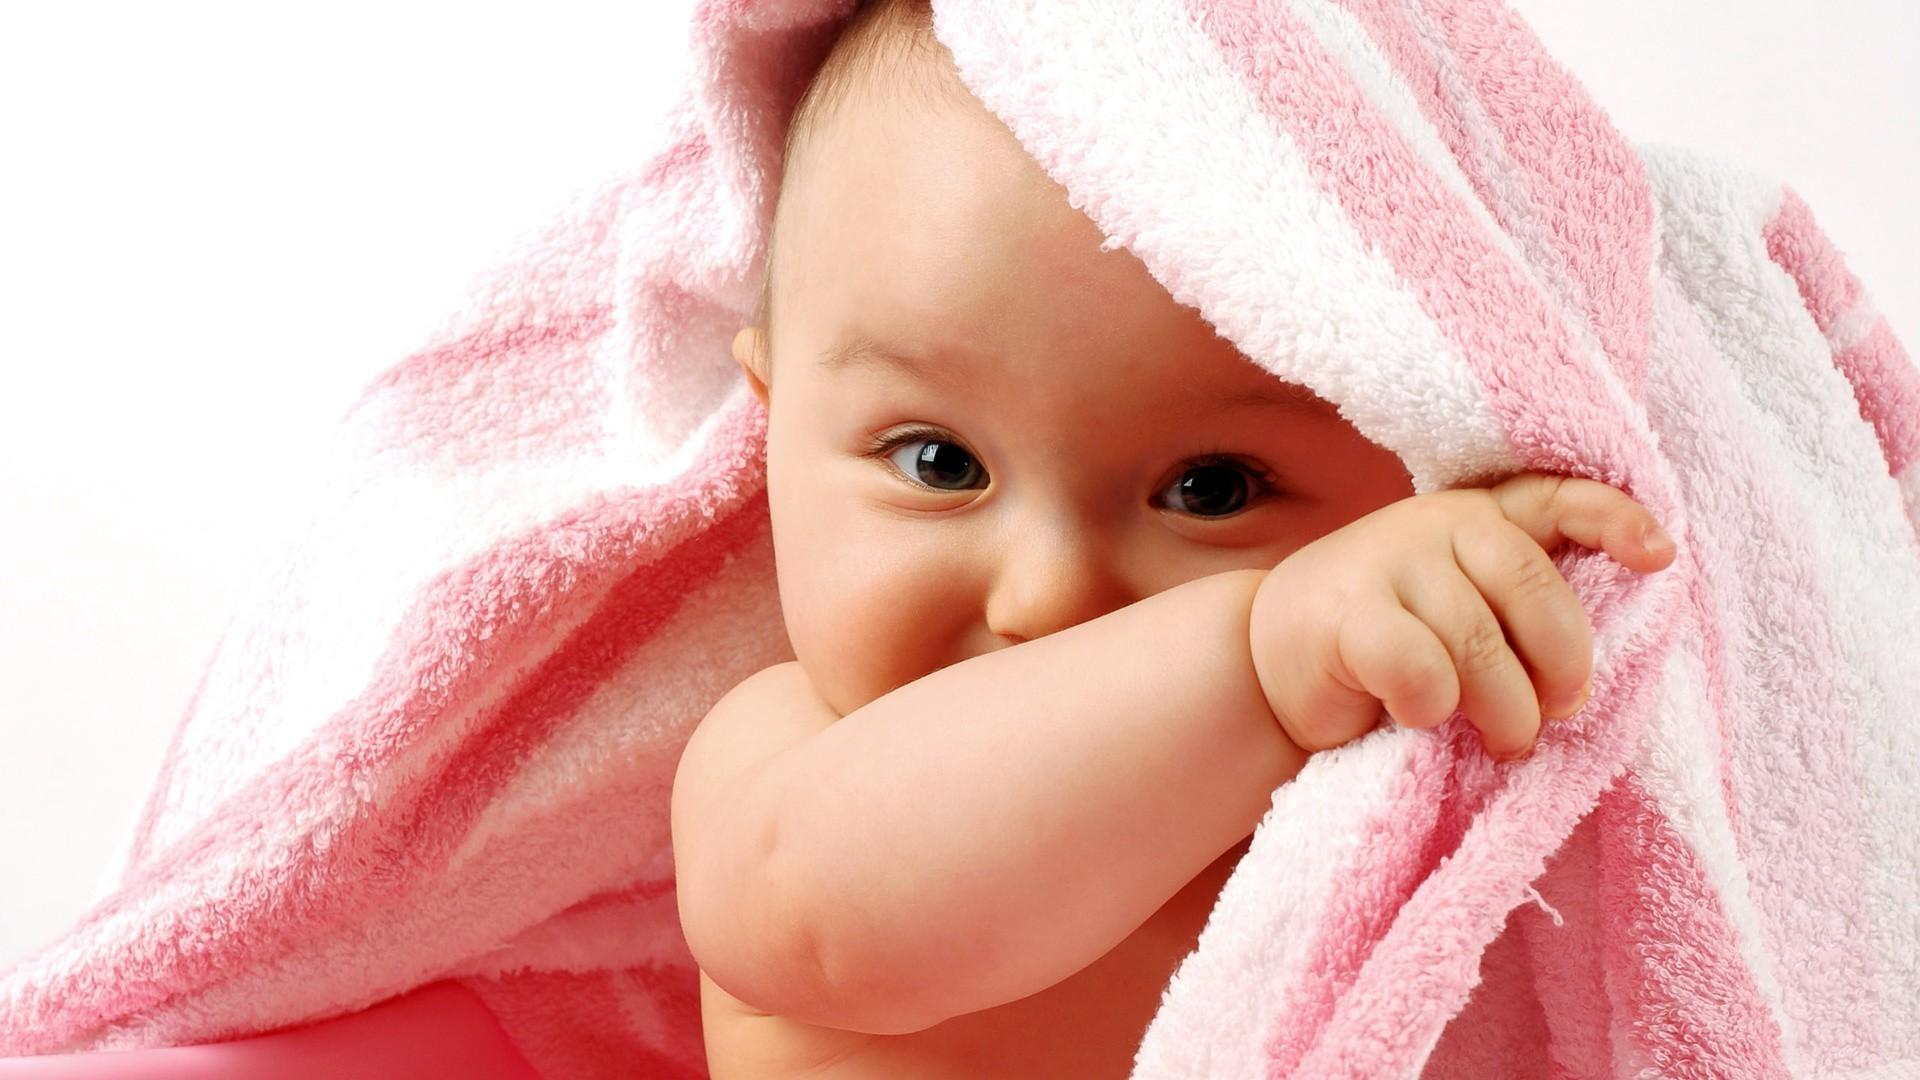 babies baby child cute little skin towel clean newborn bath innocence face beautiful